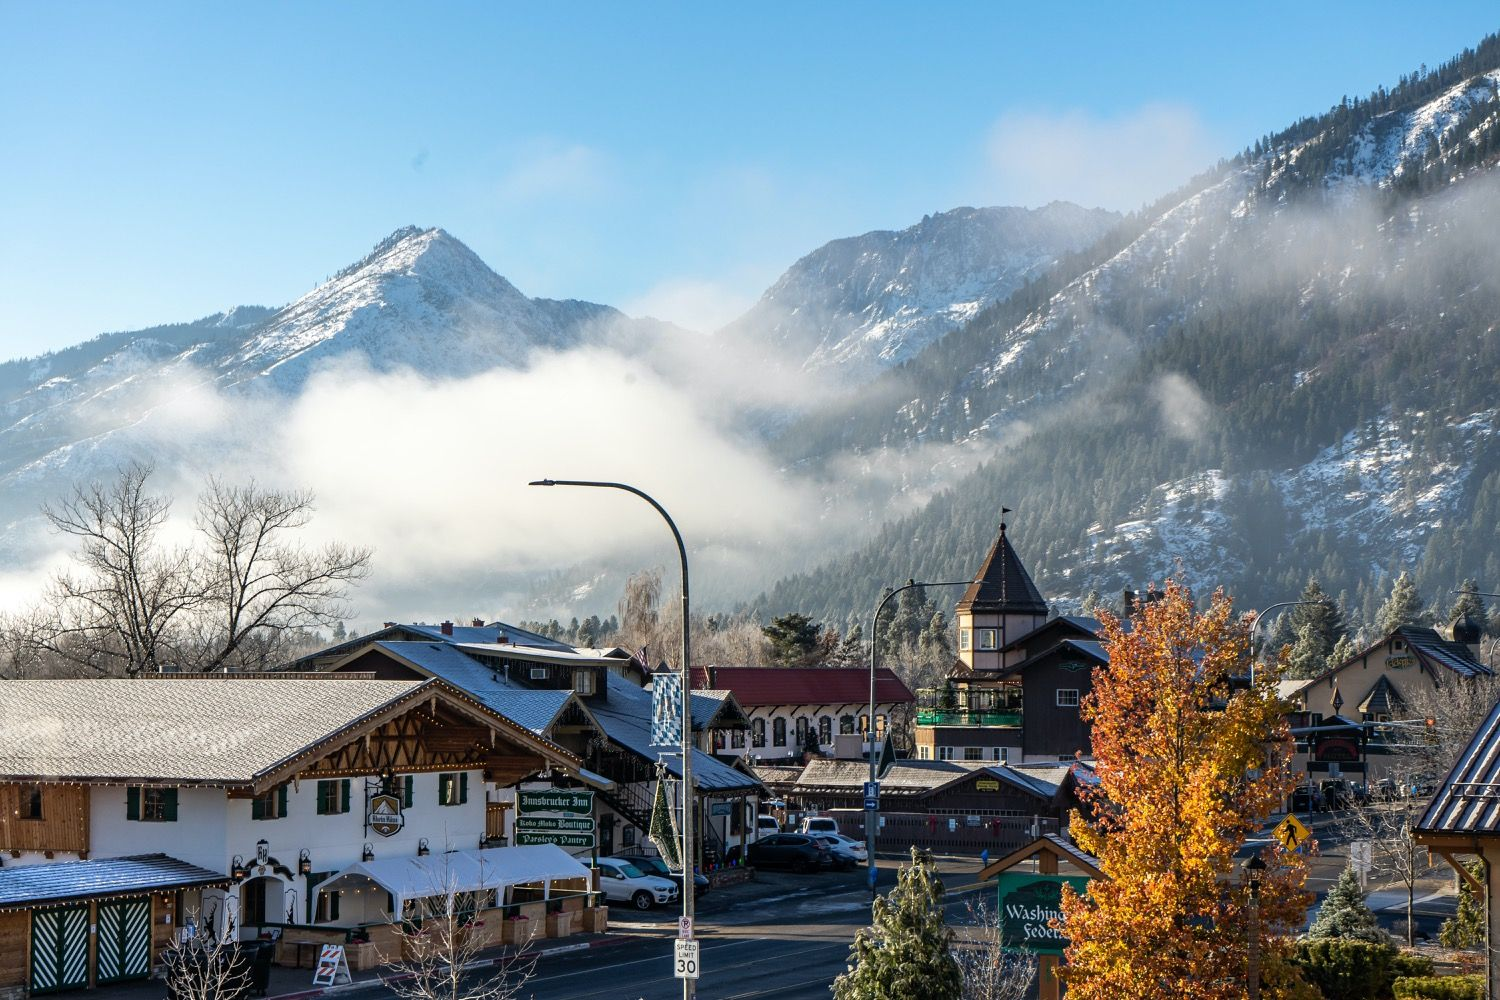 15 Best Things to Do in Leavenworth, WA